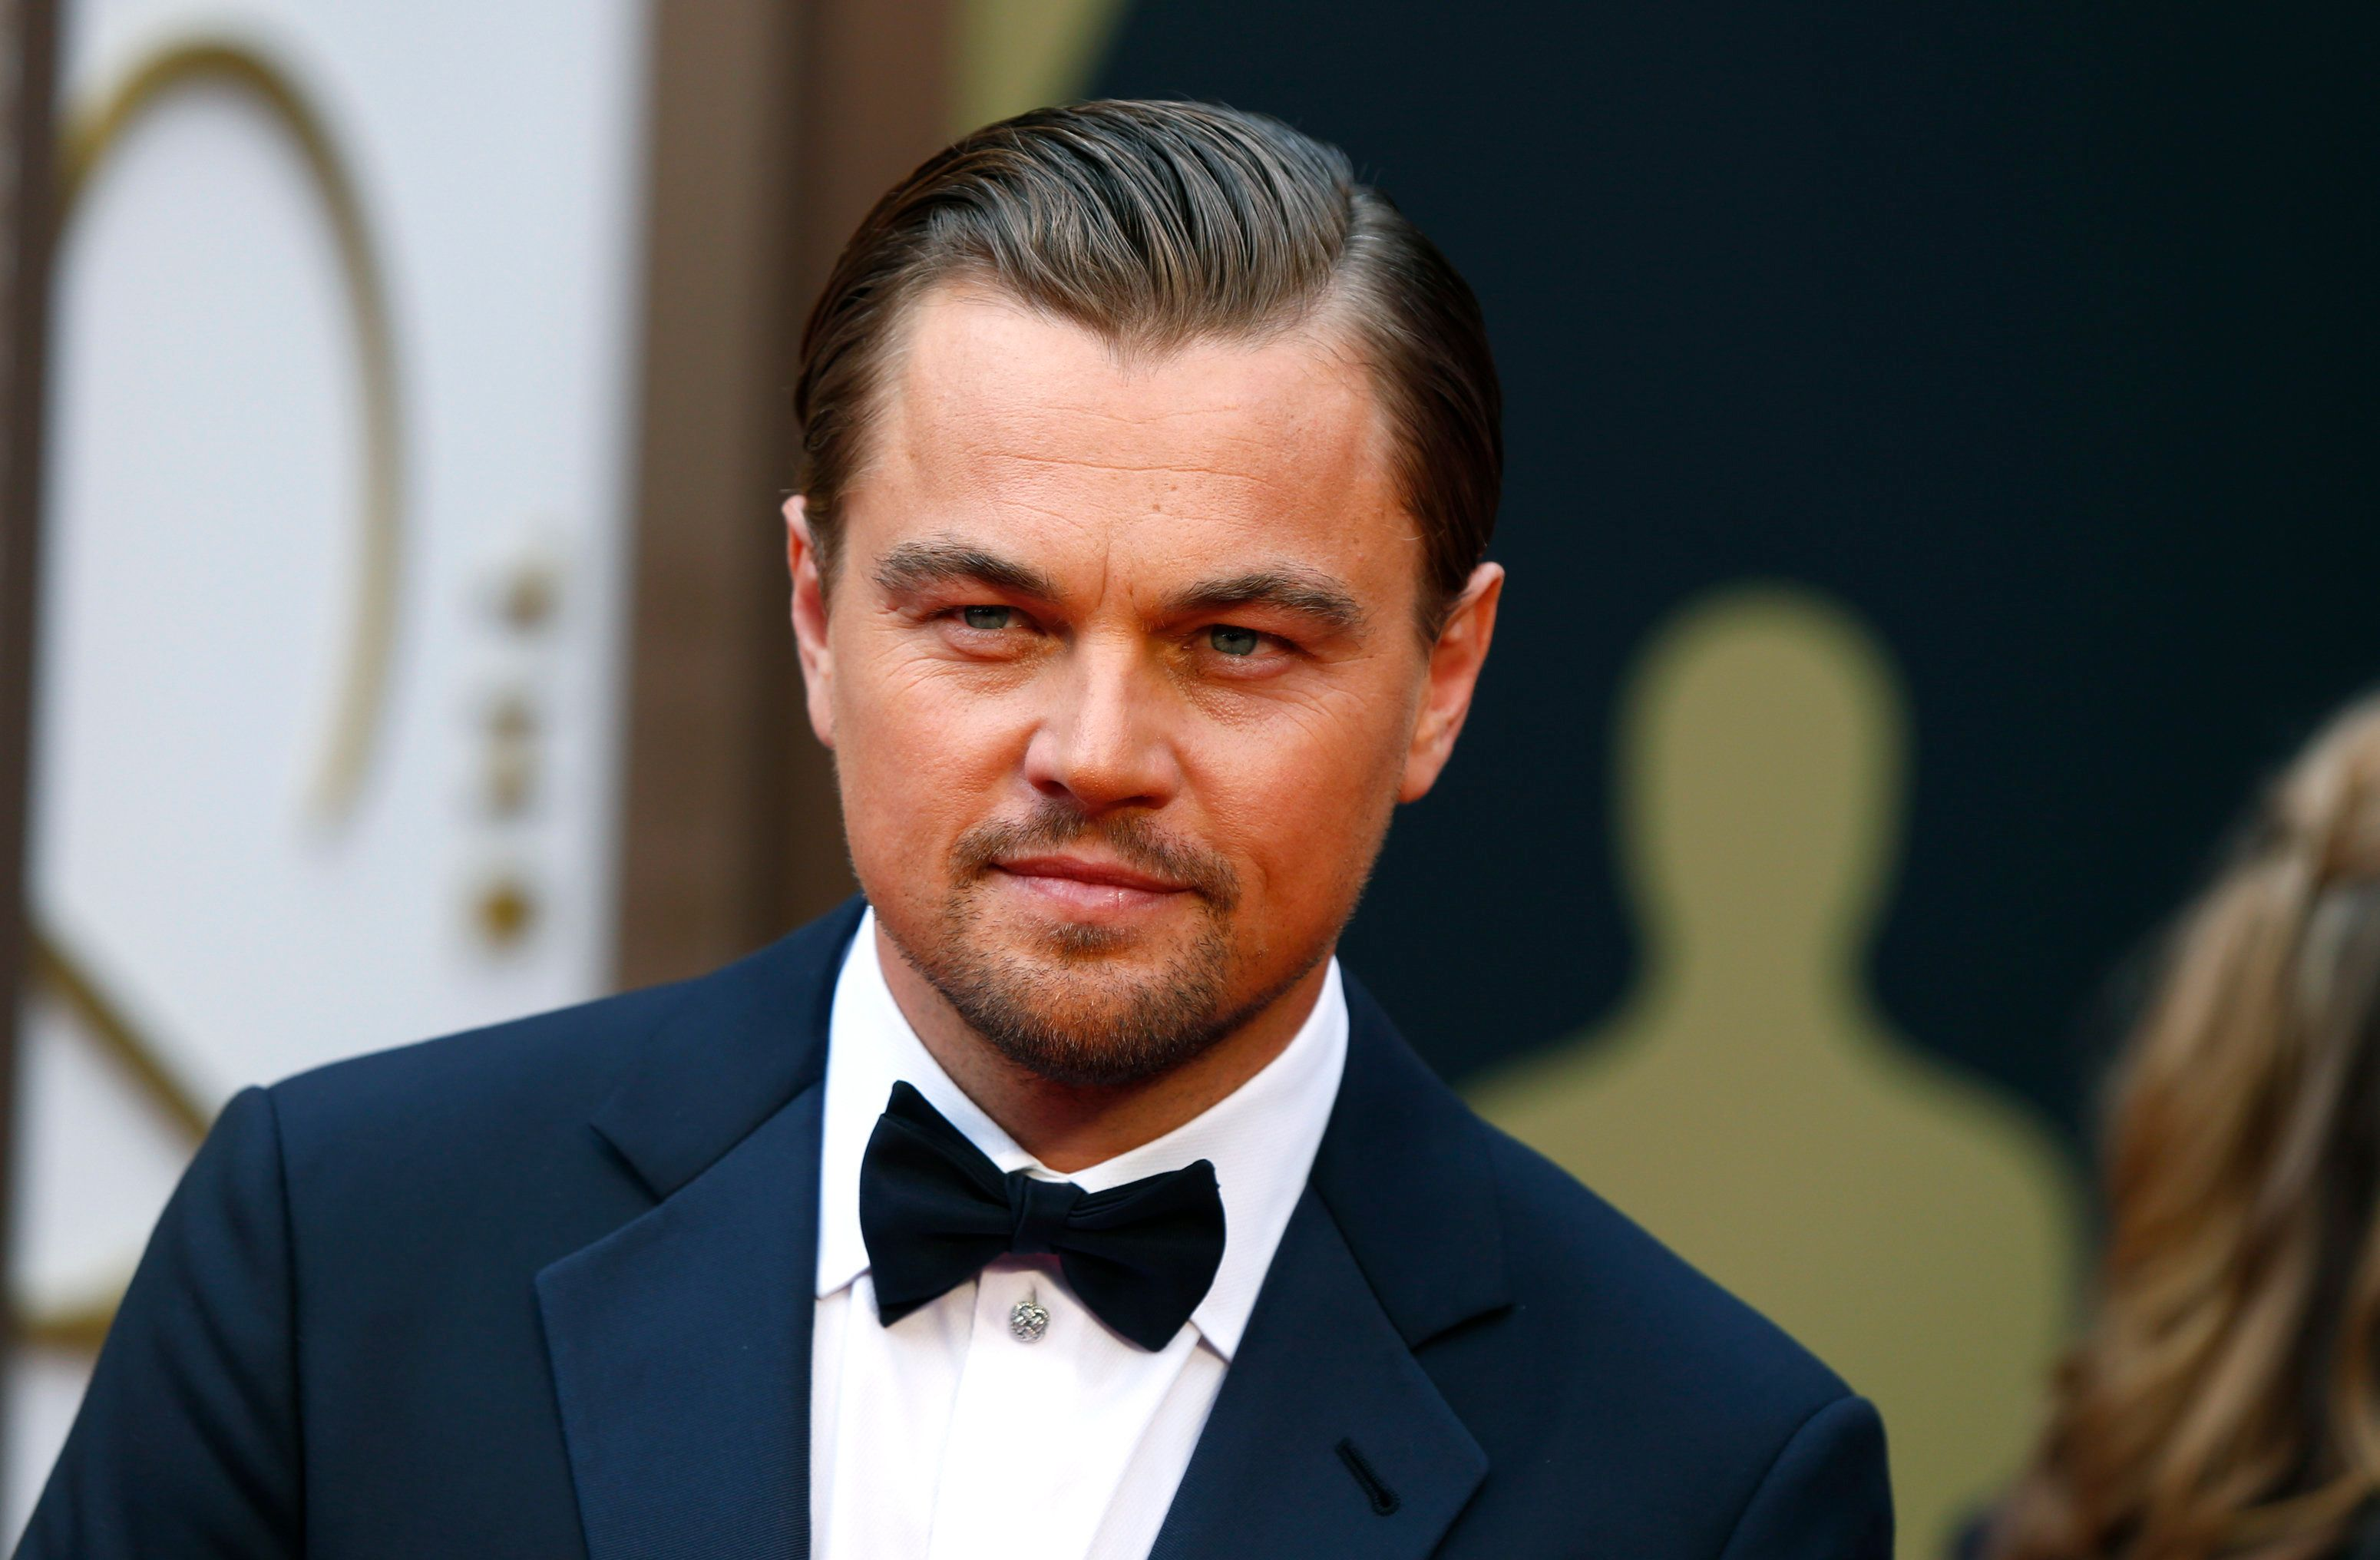 Leonardo DiCaprio at the 86th Academy Awards in Hollywood, California, in 2014.